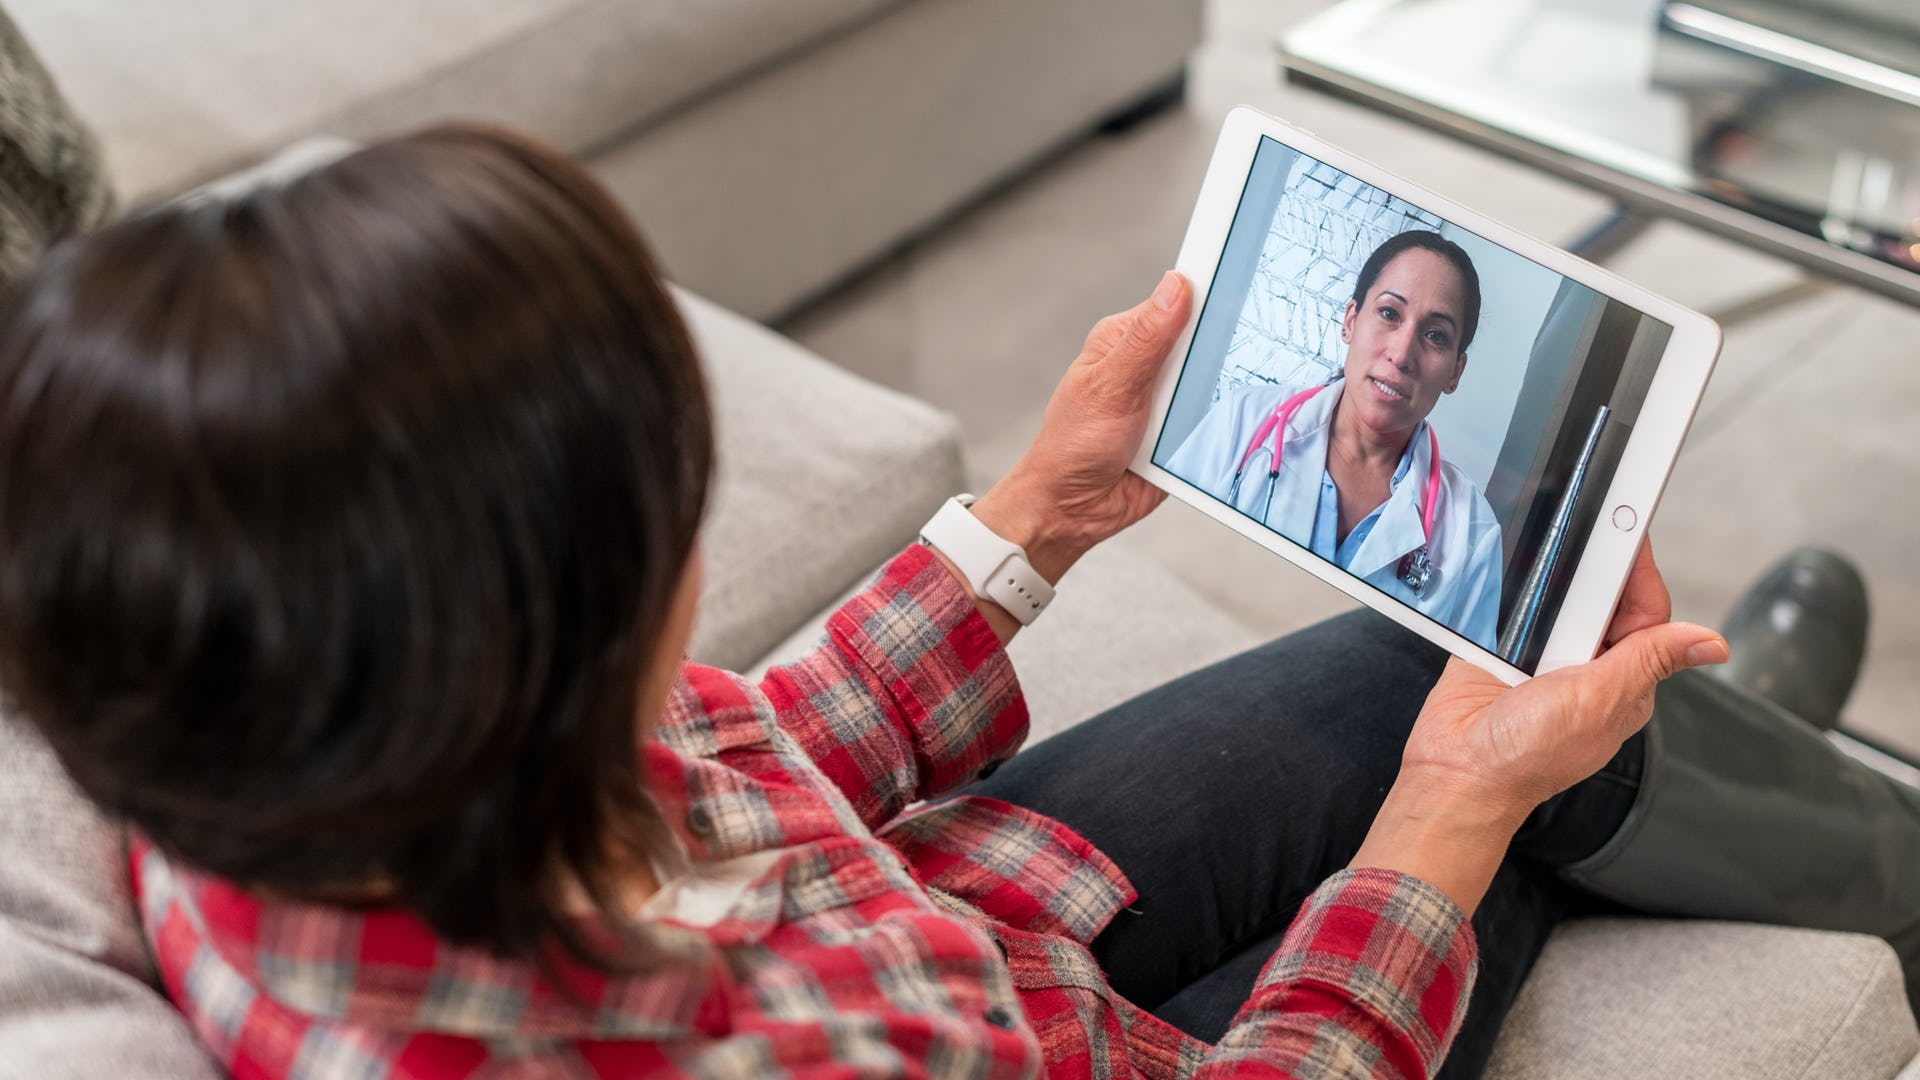 AdvancedTelemedicine - What a visit looks like